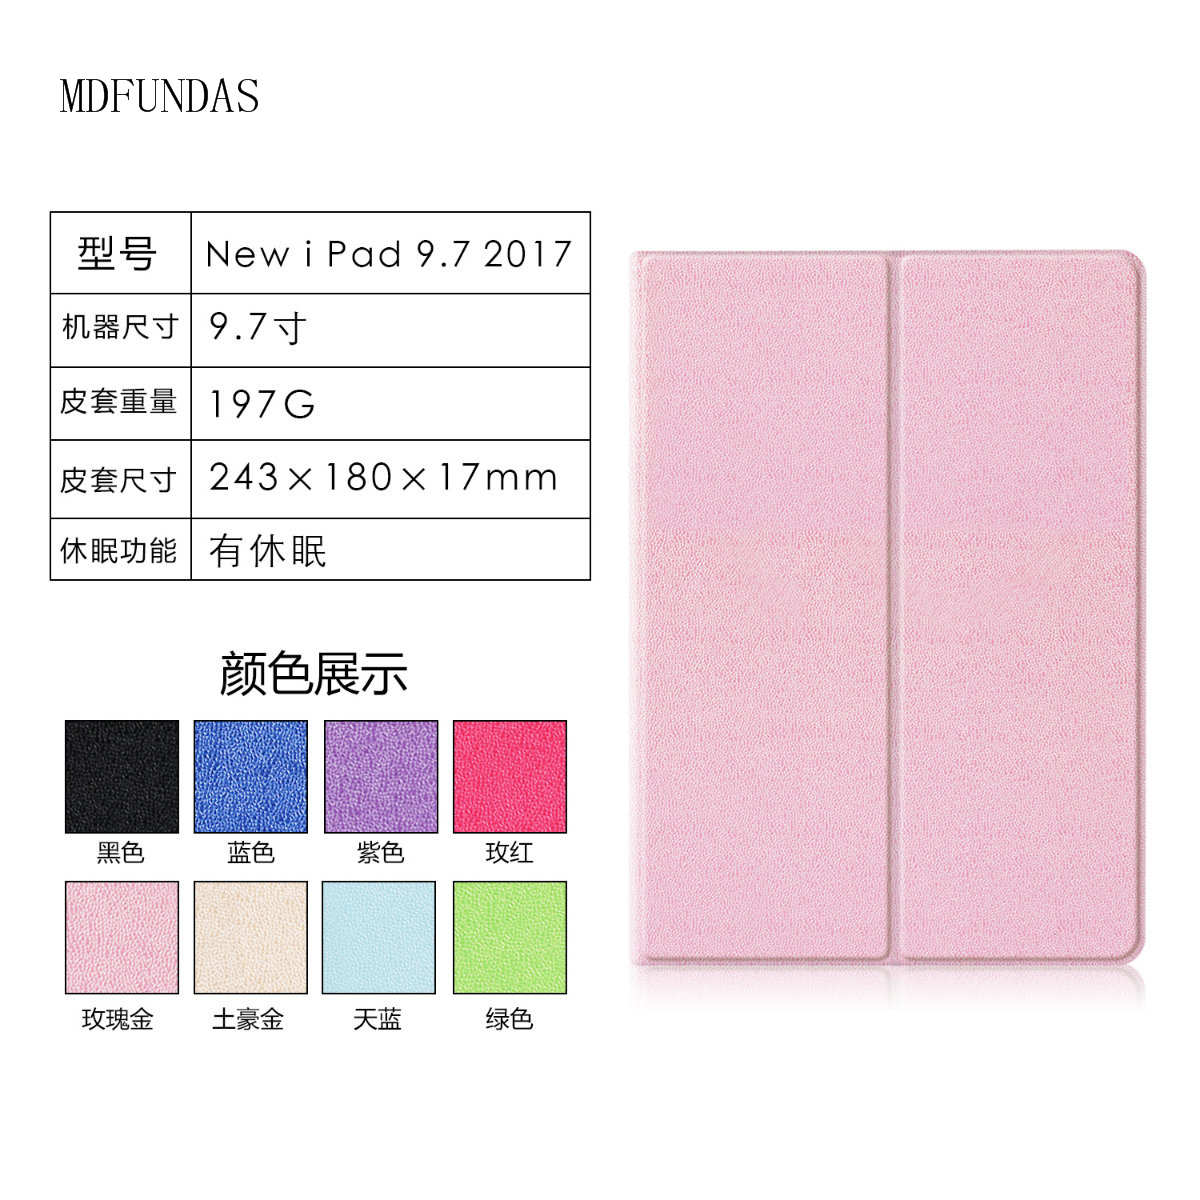 MDFUNDAS High Quality PU Leather Flip Stand Tablet Case Cover For Apple New iPad 2017 9.7 + Screen Protectors